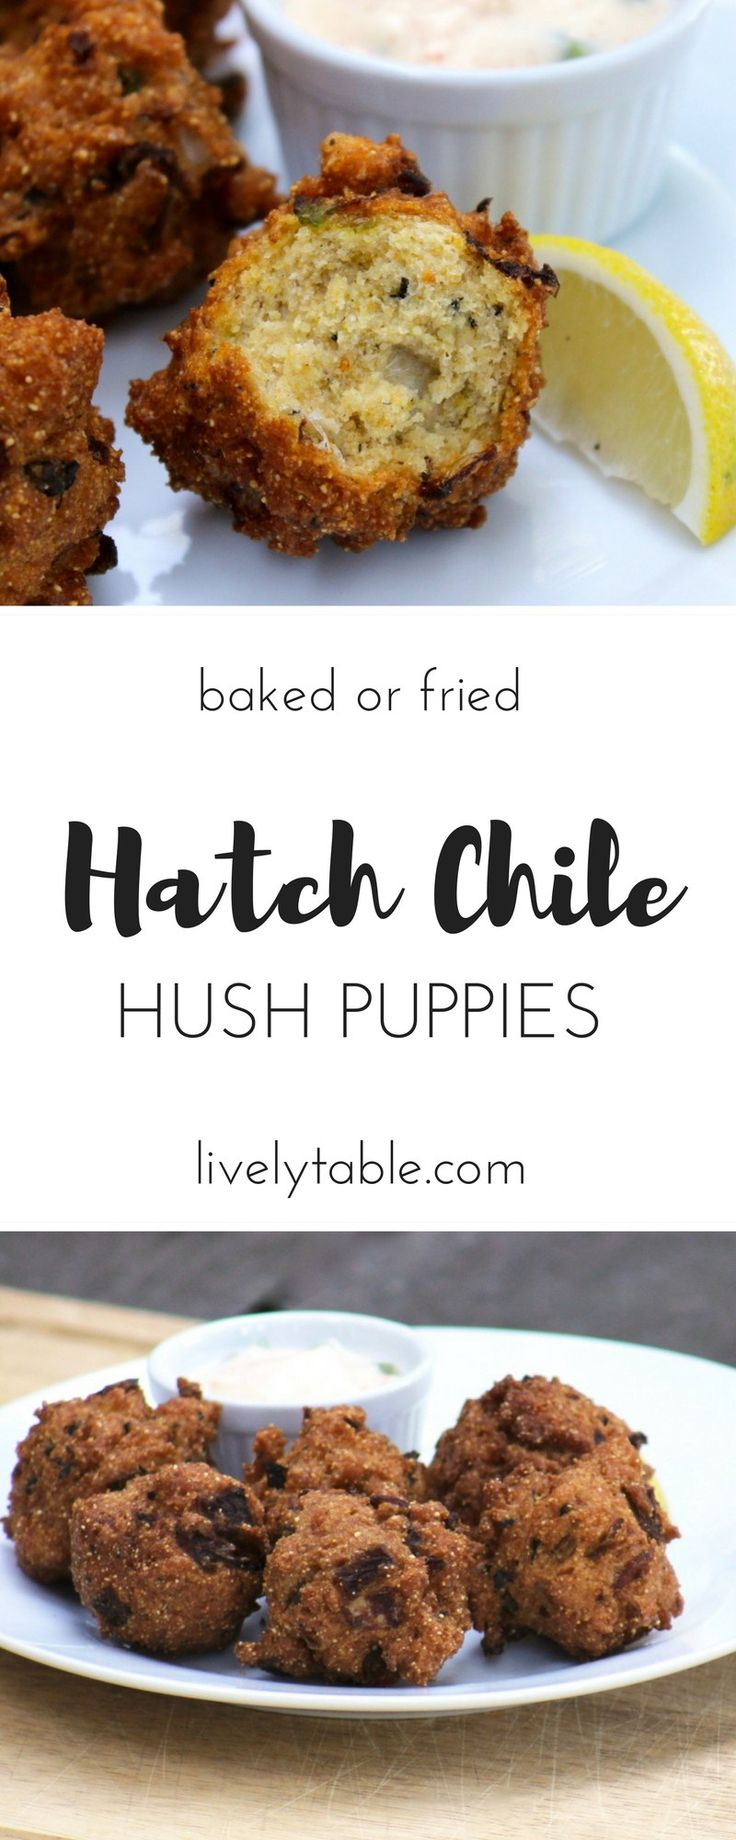 Hatch Chile Hush Puppies are delicious classic cornmeal hushpuppies with a spicy hatch chile kick and can be baked or fried. | Via livelytable.com @livelytable